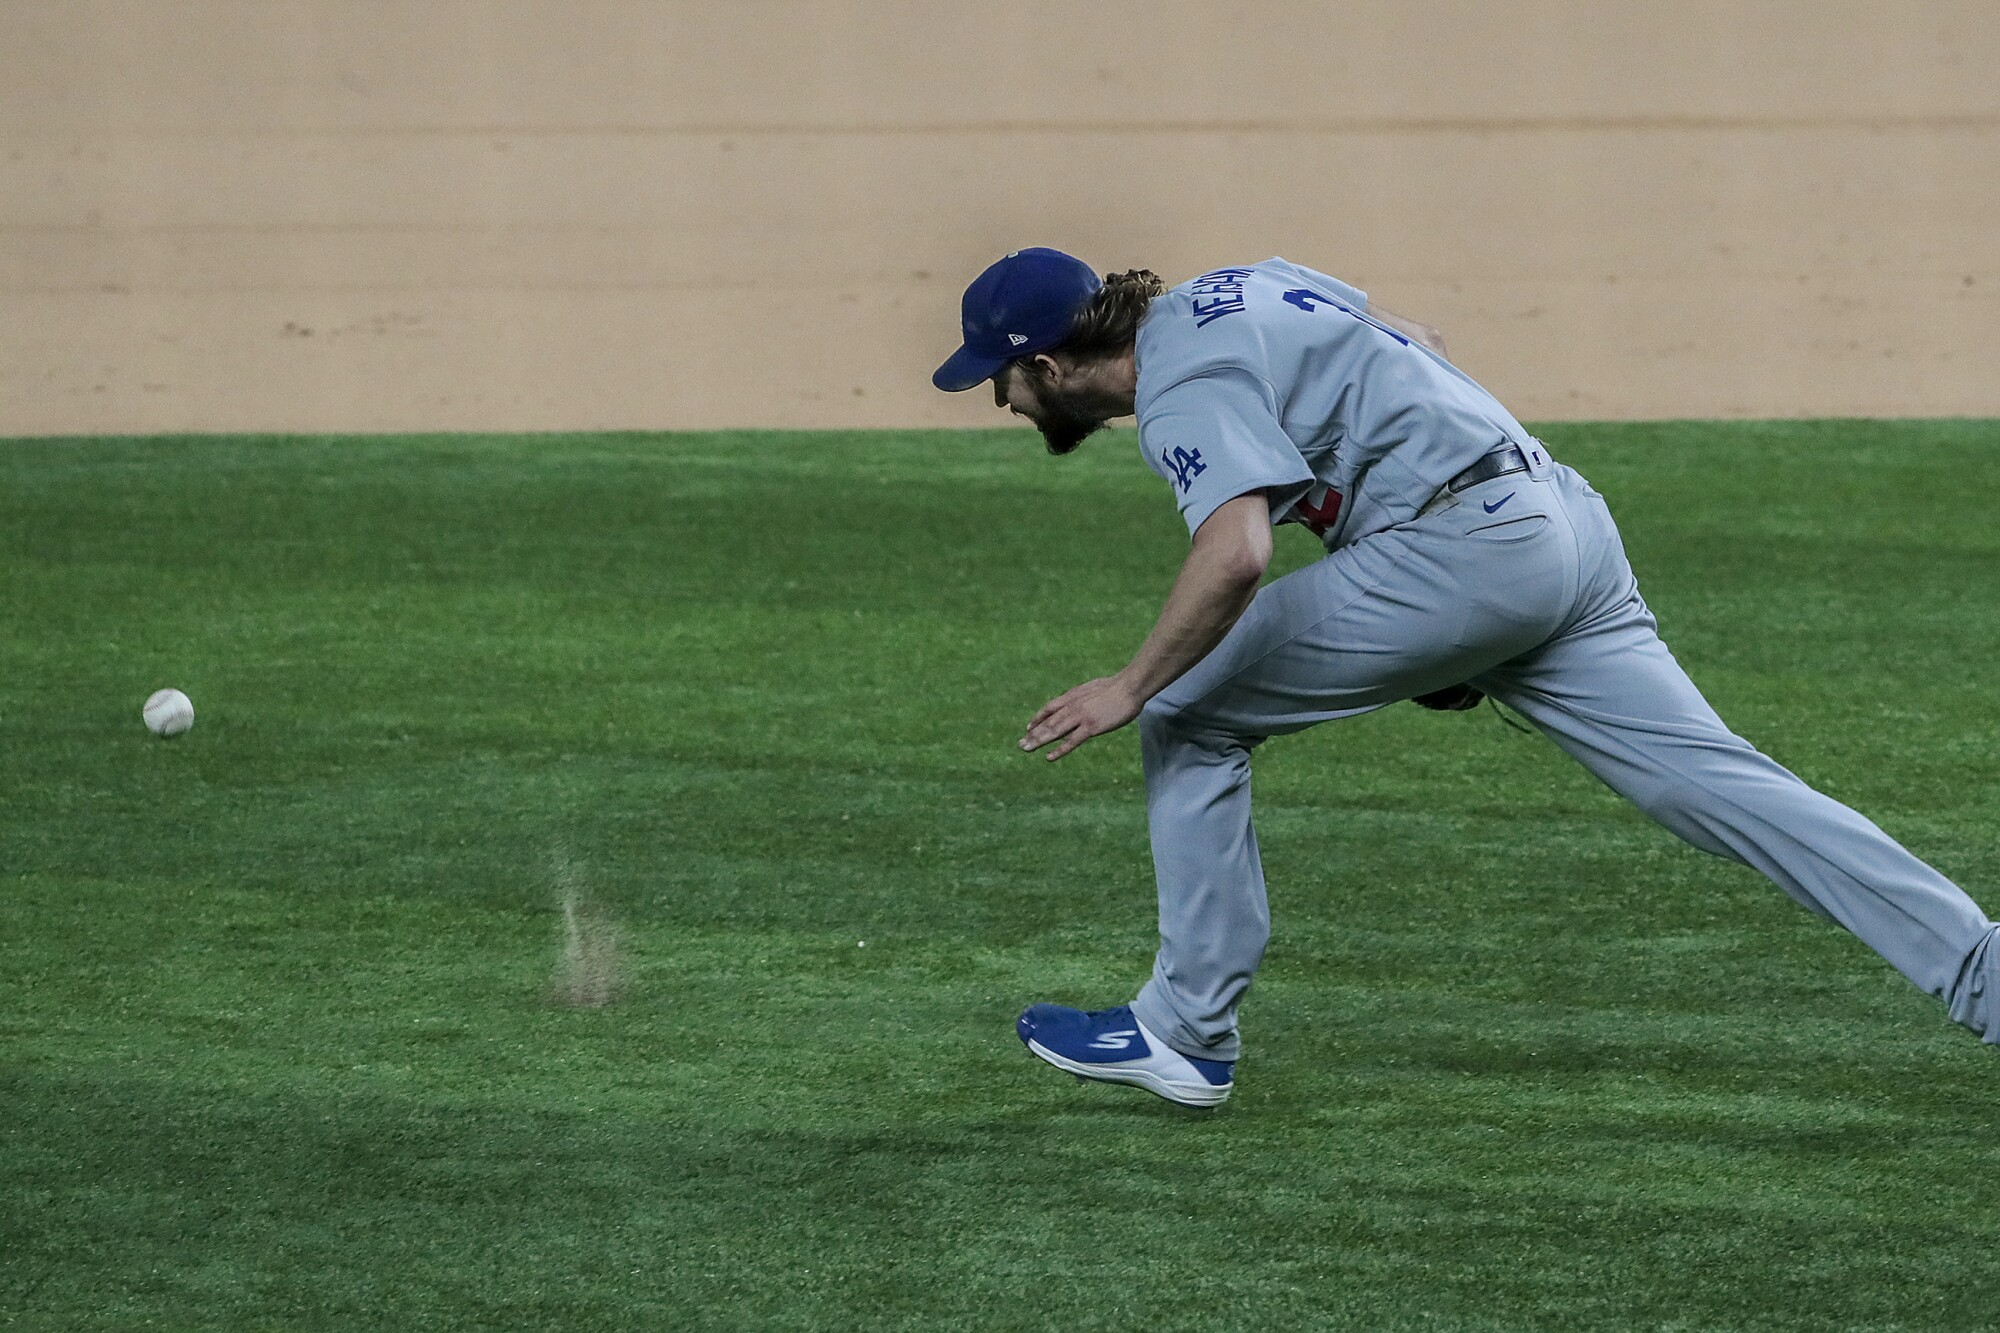 Dodgers starter Clayton Kershaw chases a grounder hit by Atlanta's Ronald Acuna Jr.